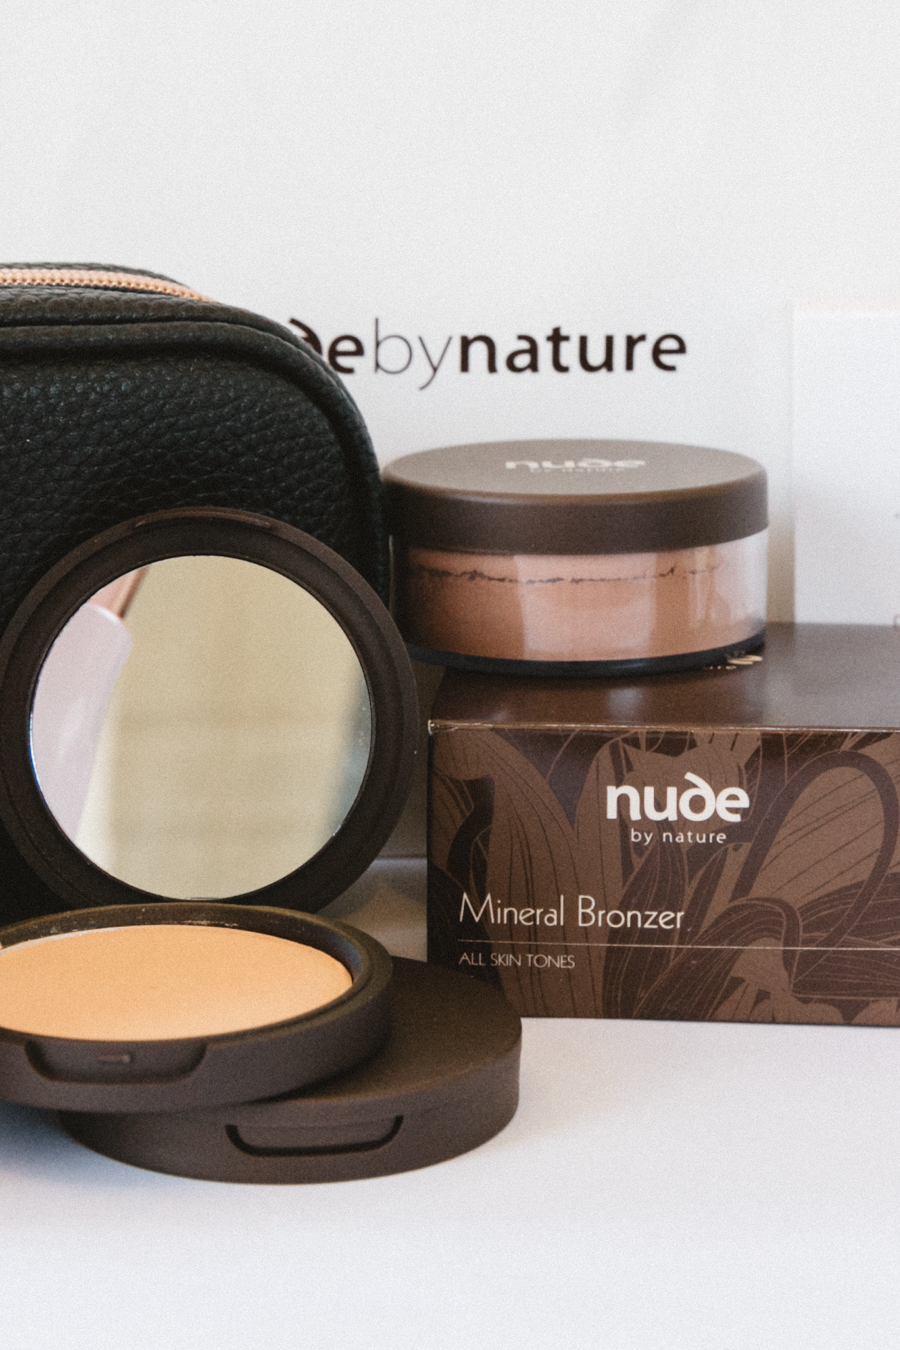 Nude By Nature makeup review.